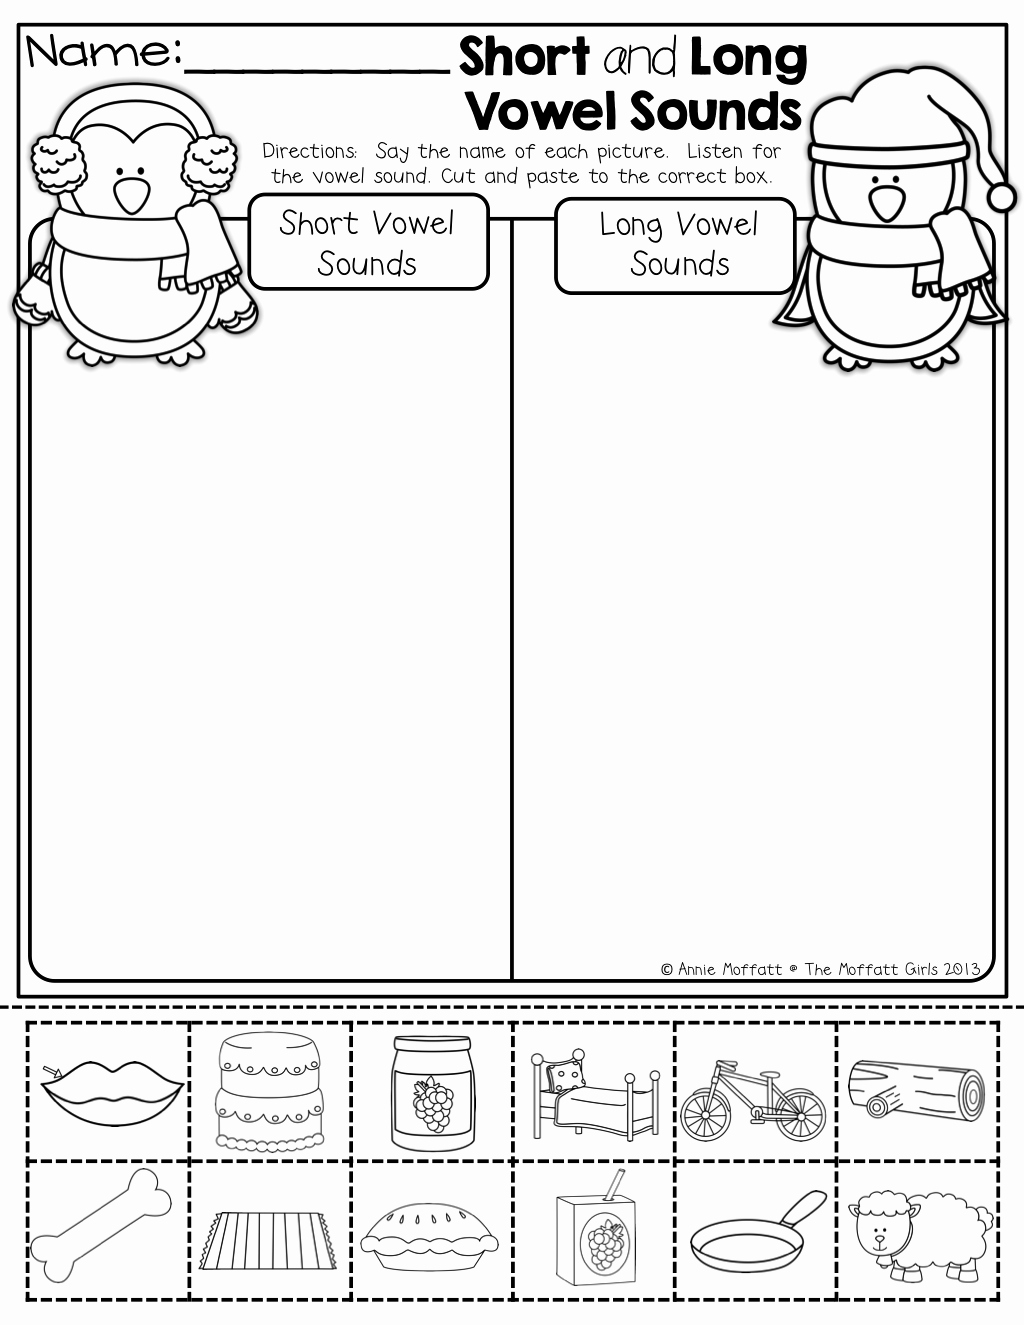 Short and Long Vowel Worksheet Inspirational Short and Long Vowel sounds